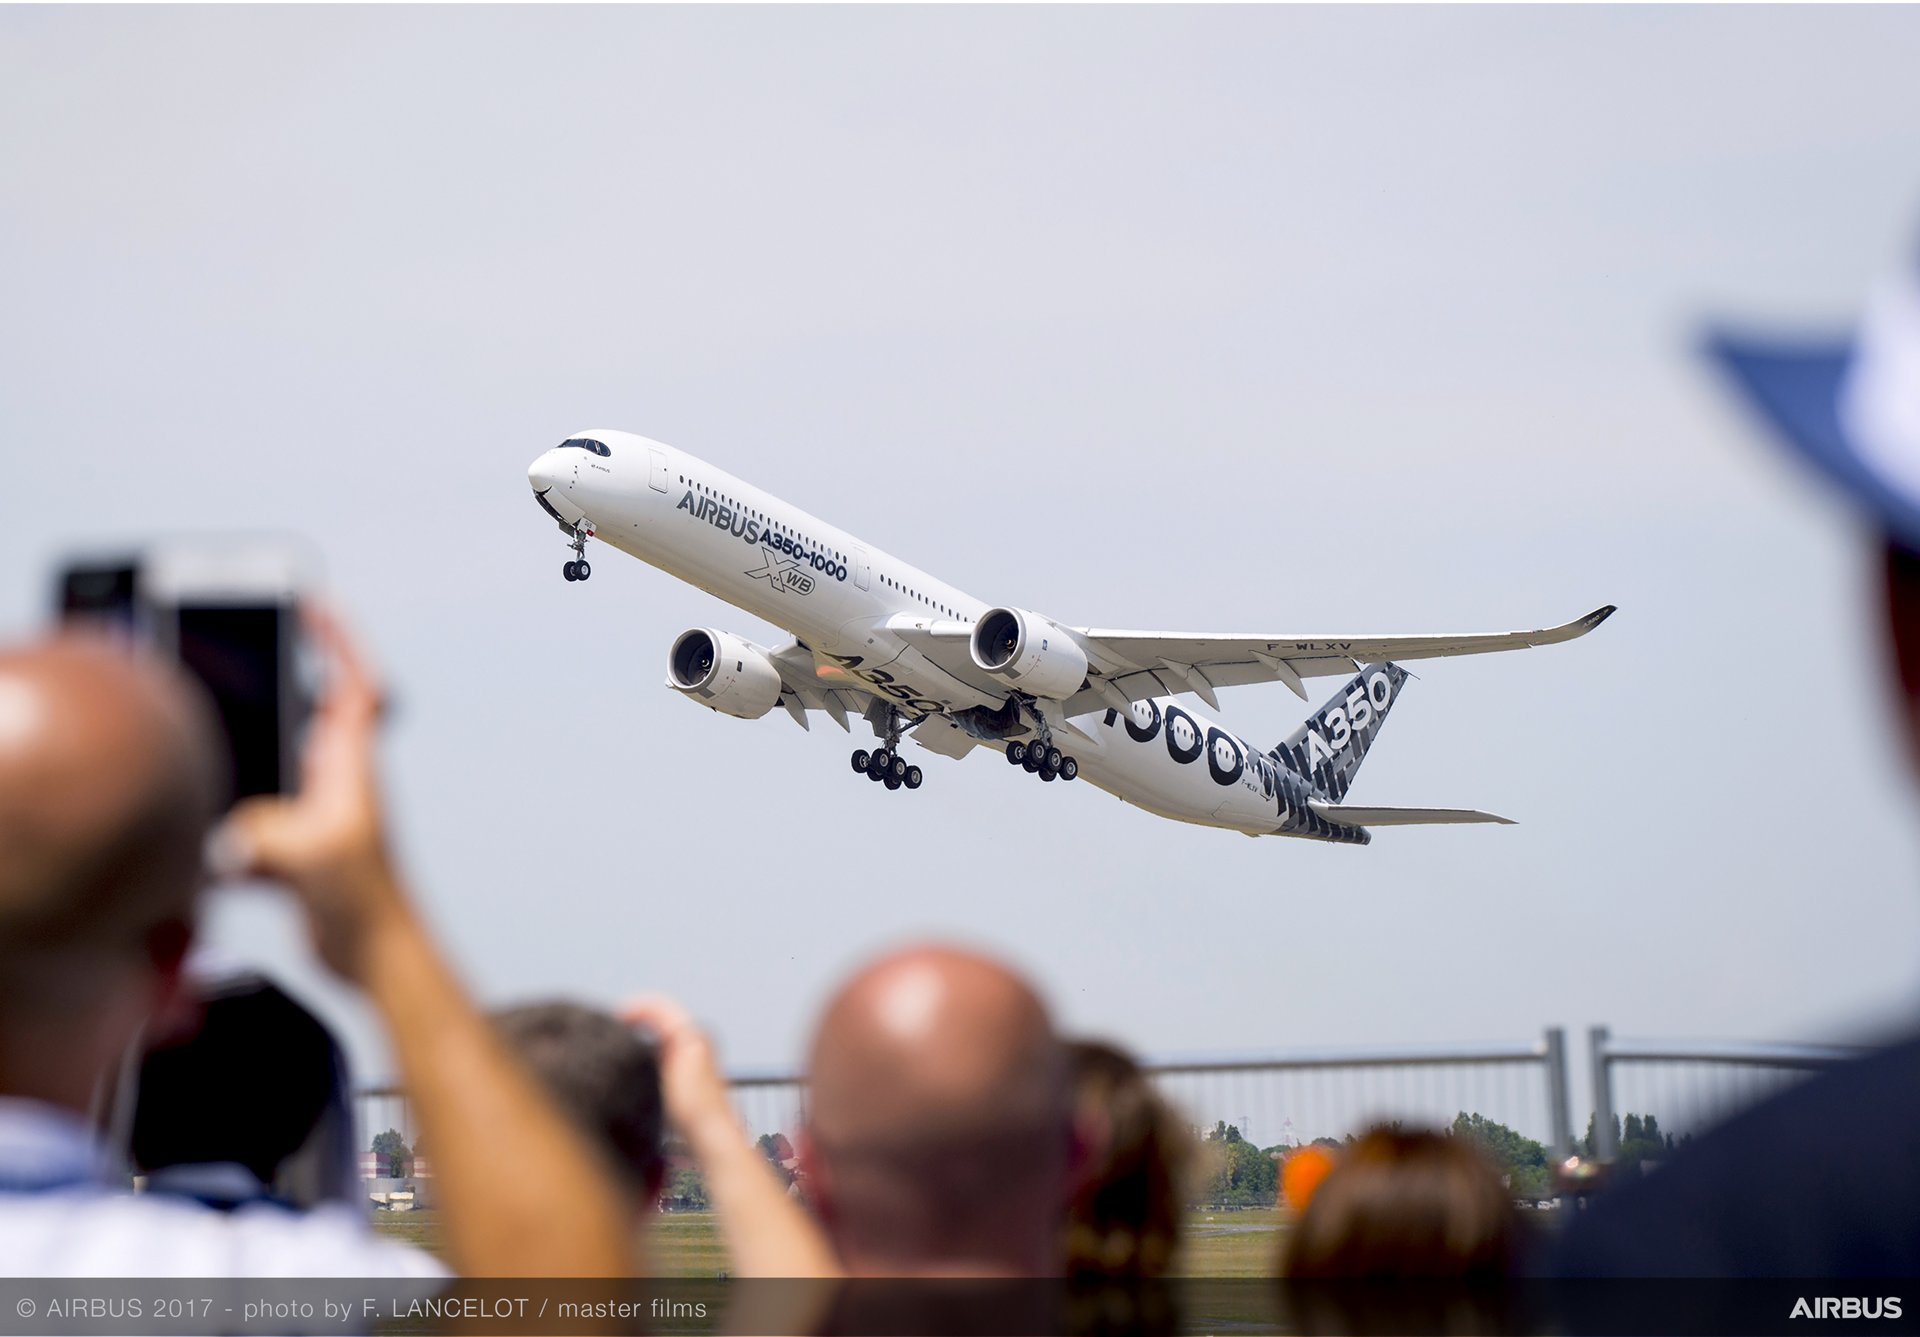 A350-1000 flight display at Paris Air Show 2017.